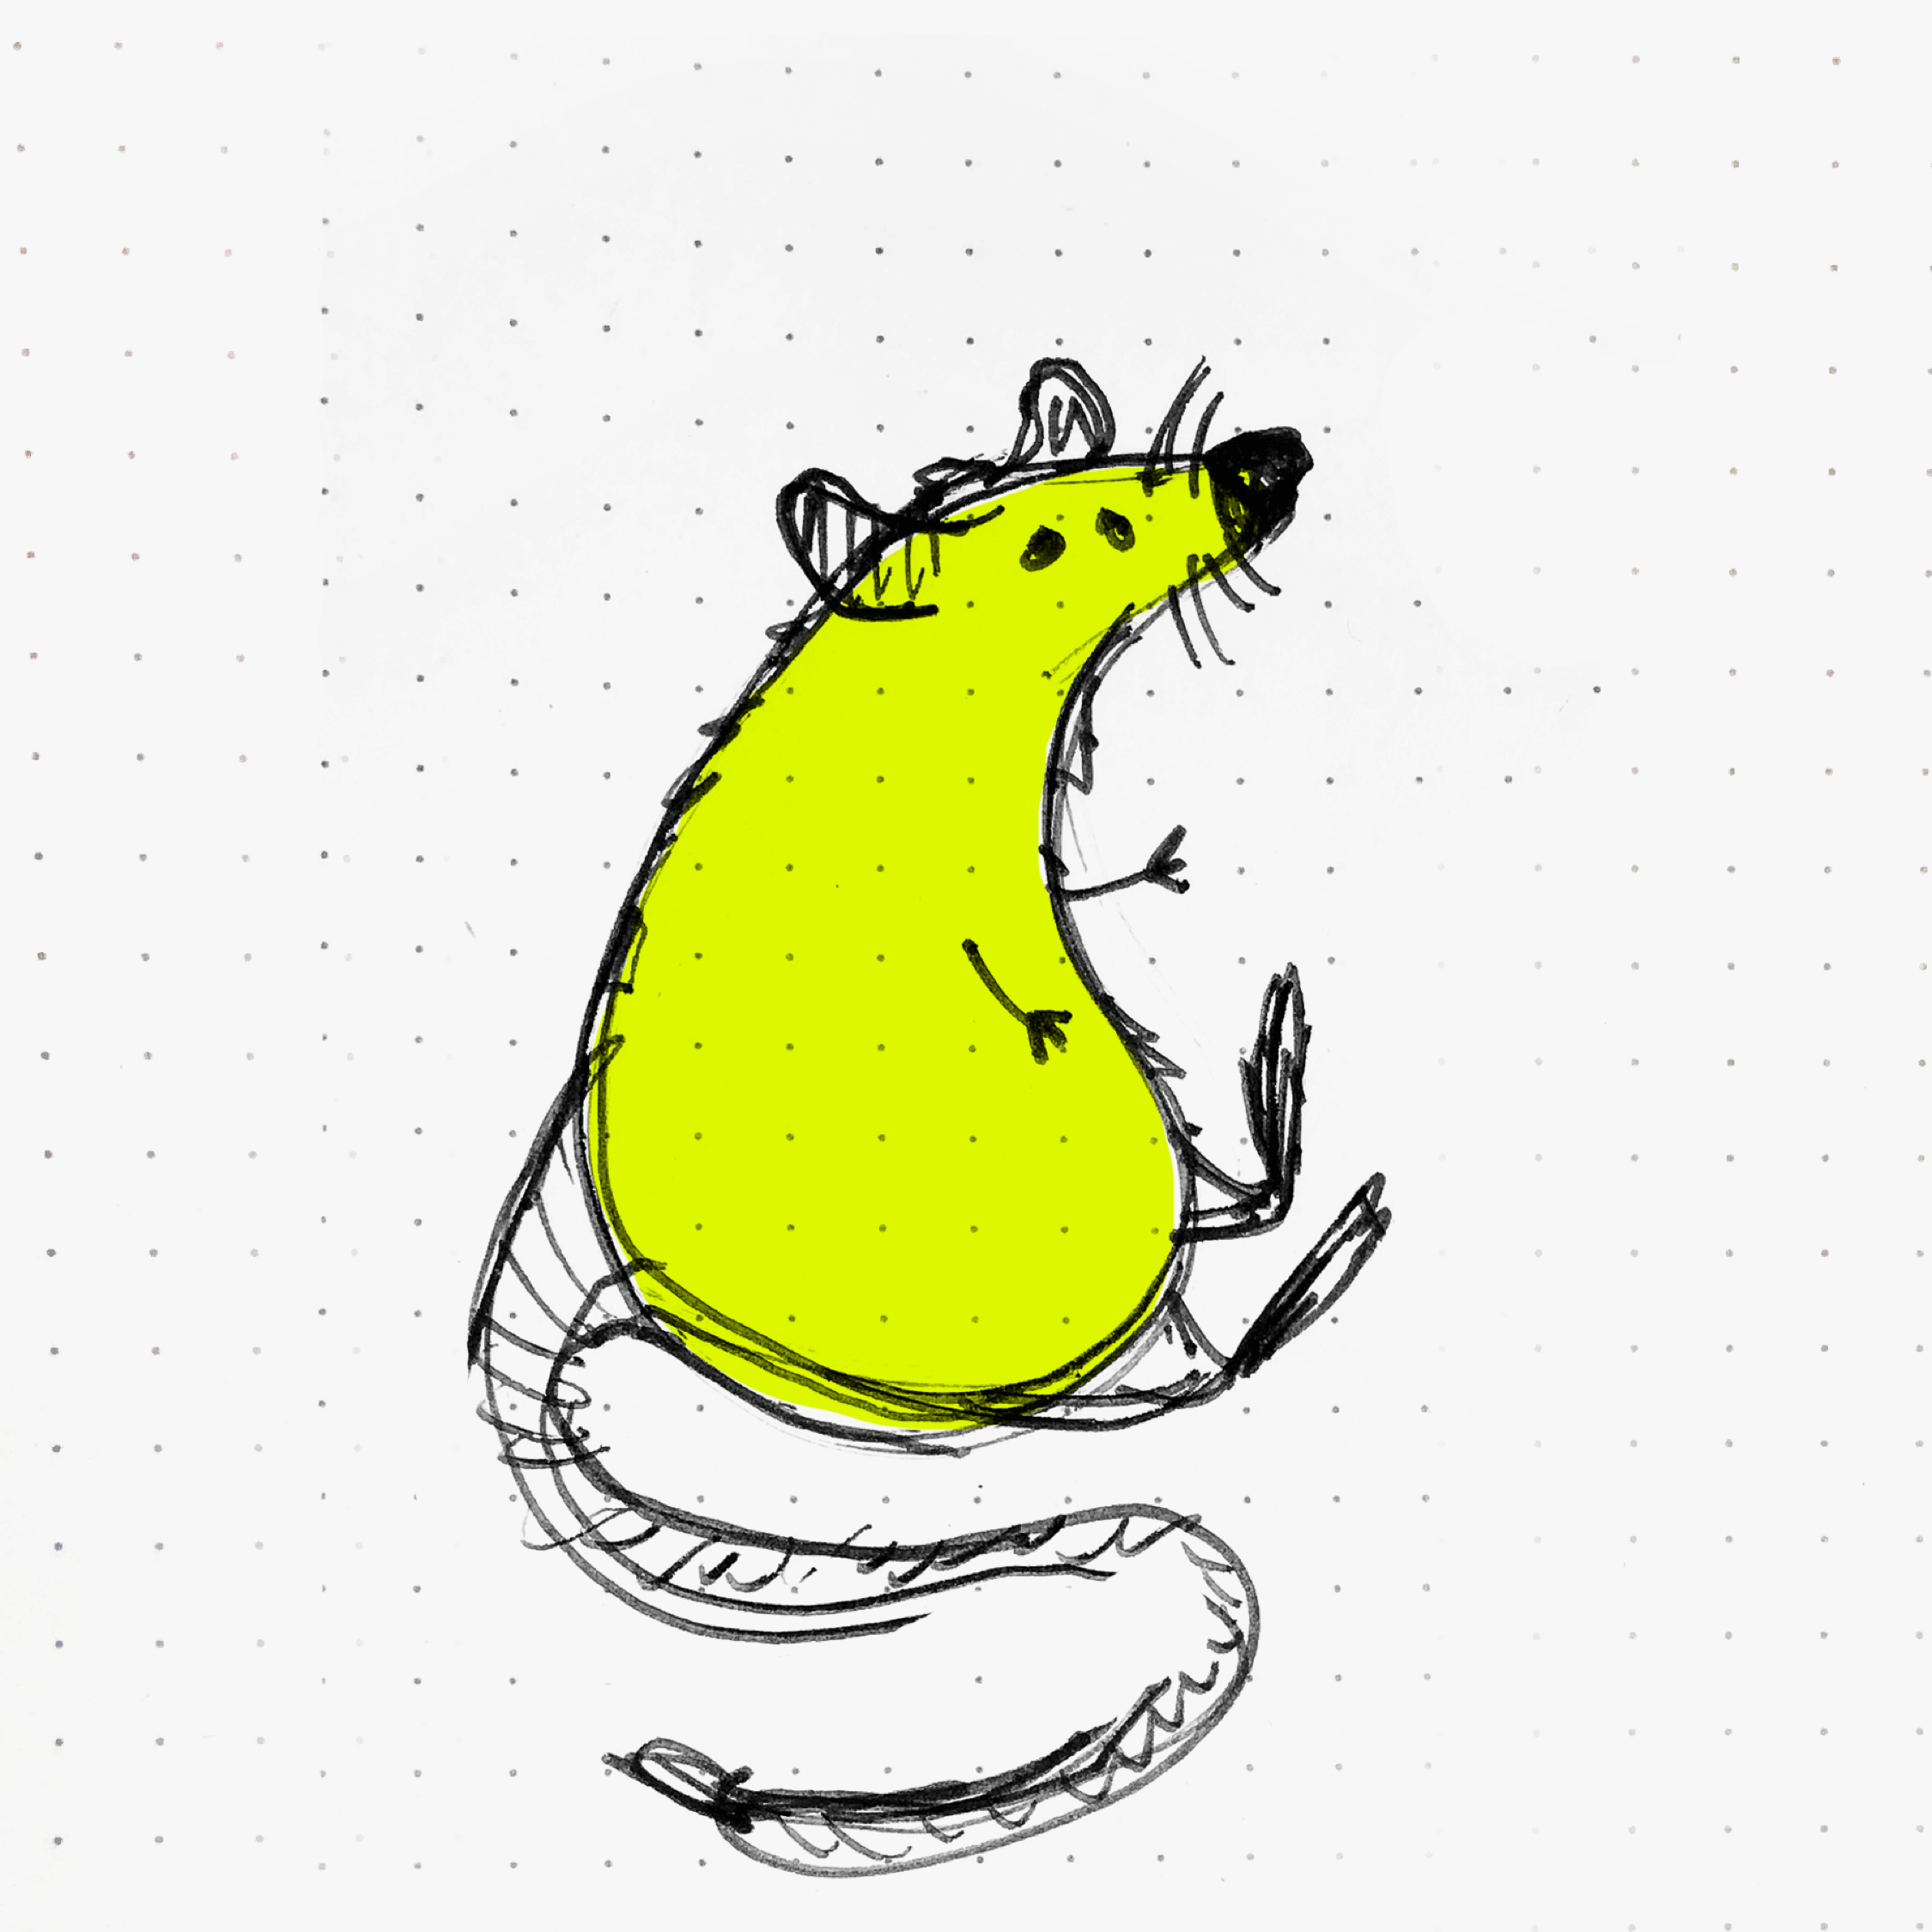 Critter of NYC#1Mr. Rat